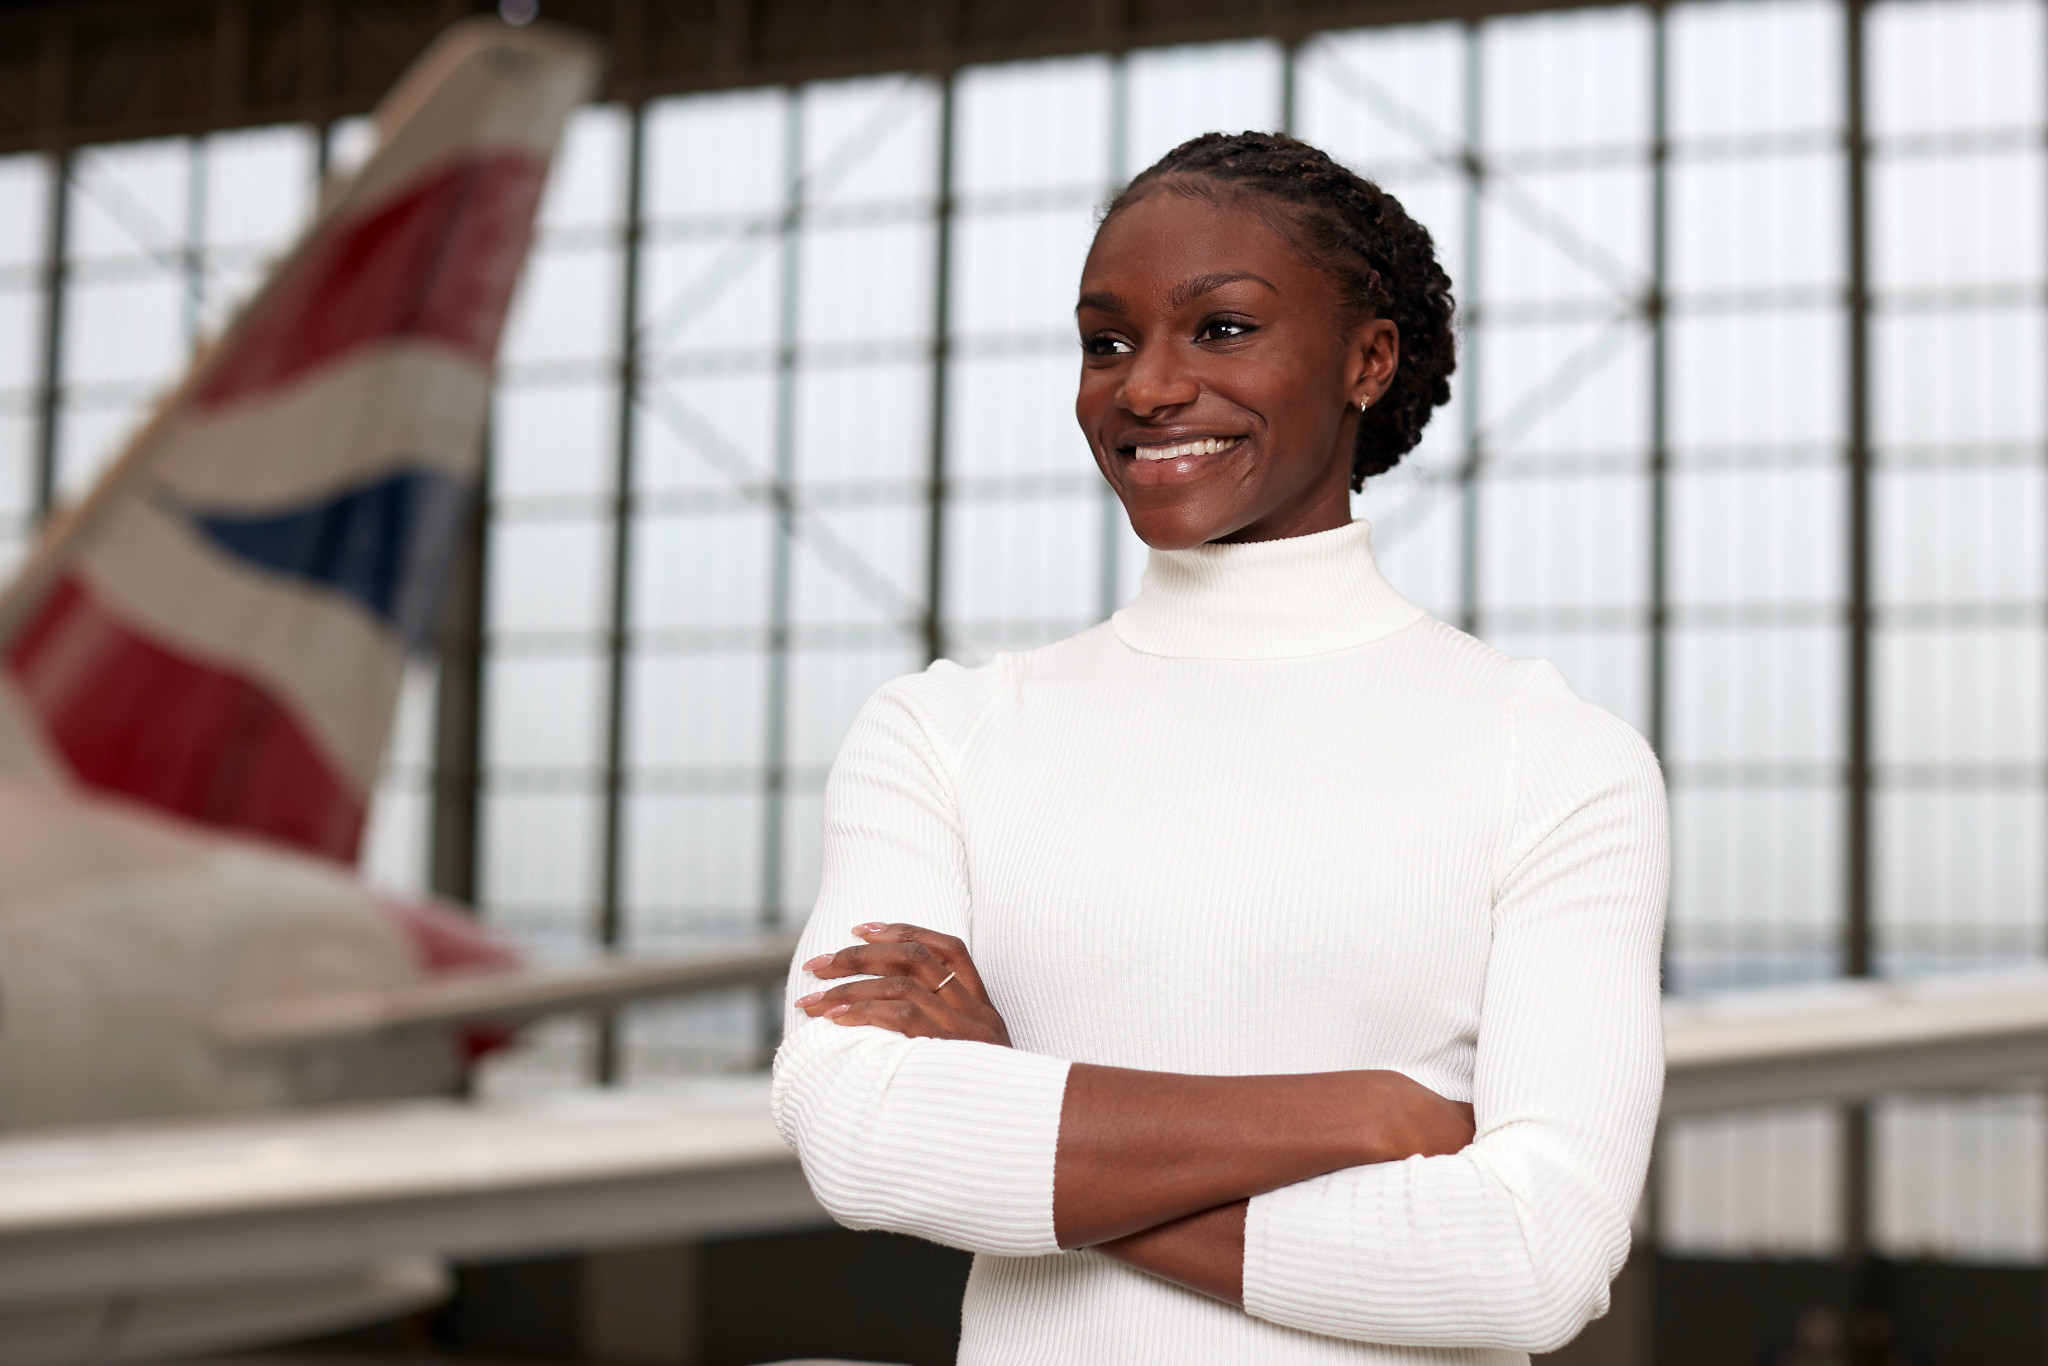 World champion sprinter Dina Asher-Smith will be one of Britain's star attractions in Tokyo ©Getty Images